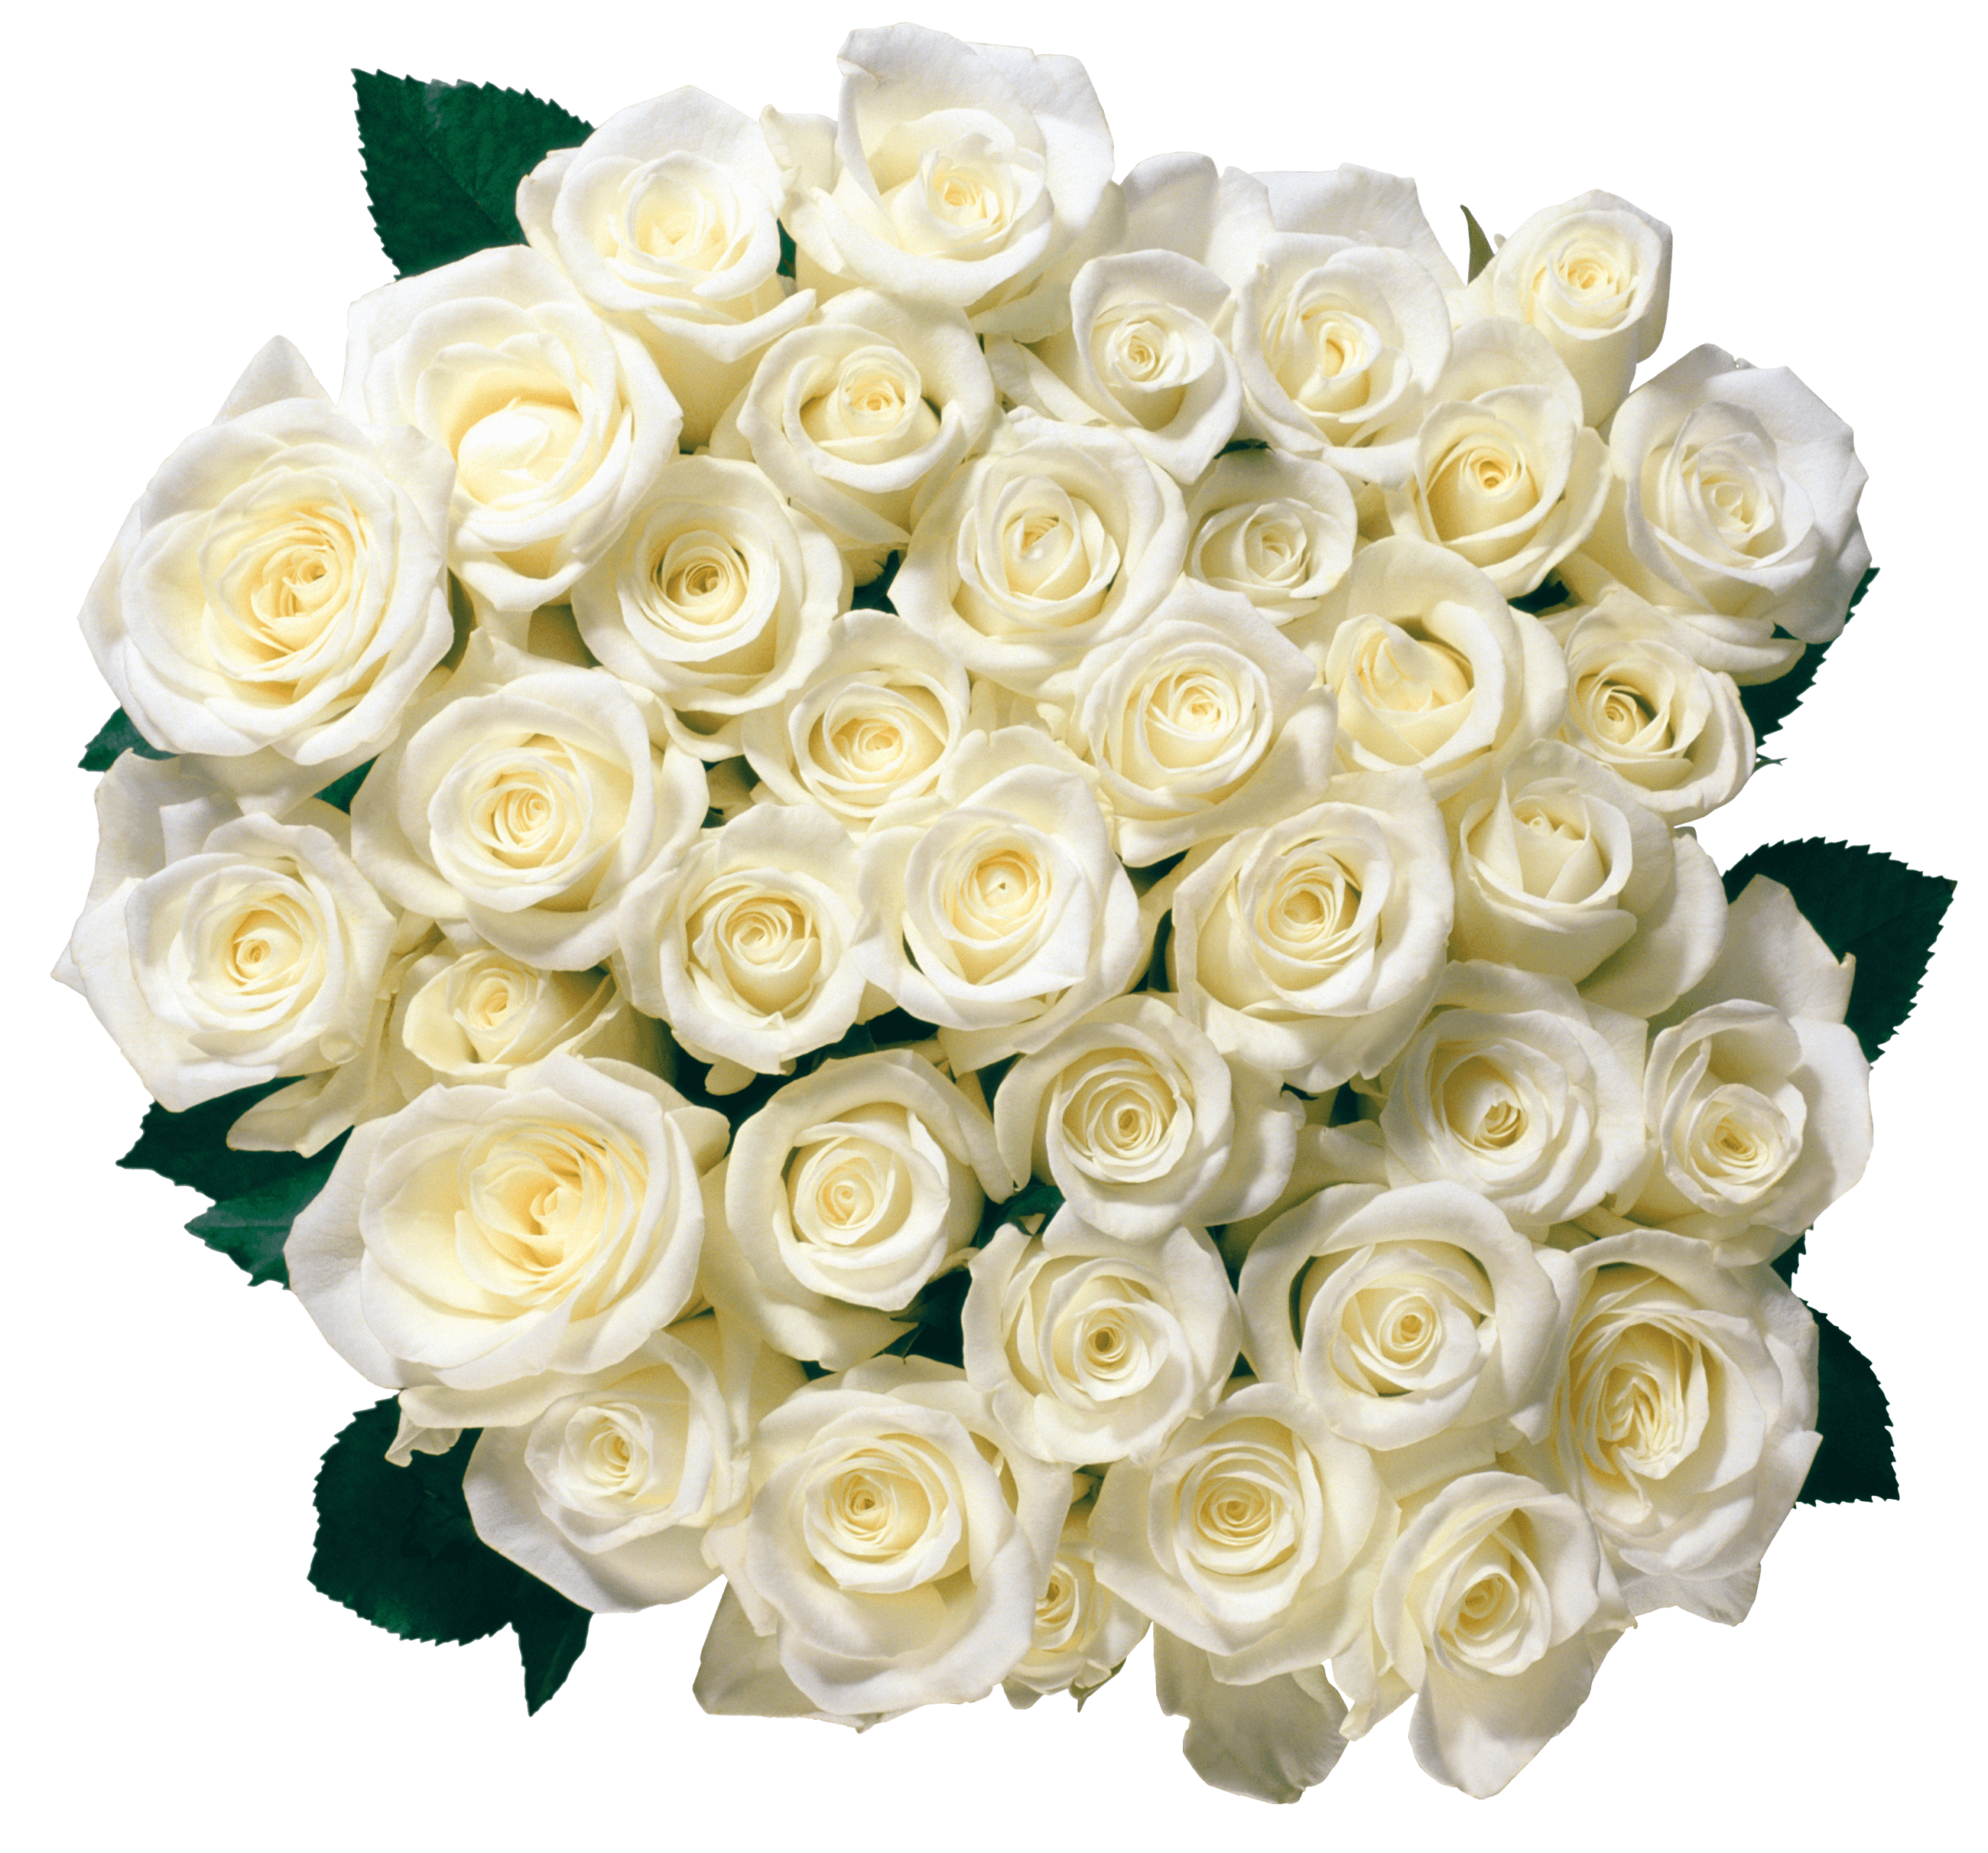 Flowers white png. Rose transparent images stickpng